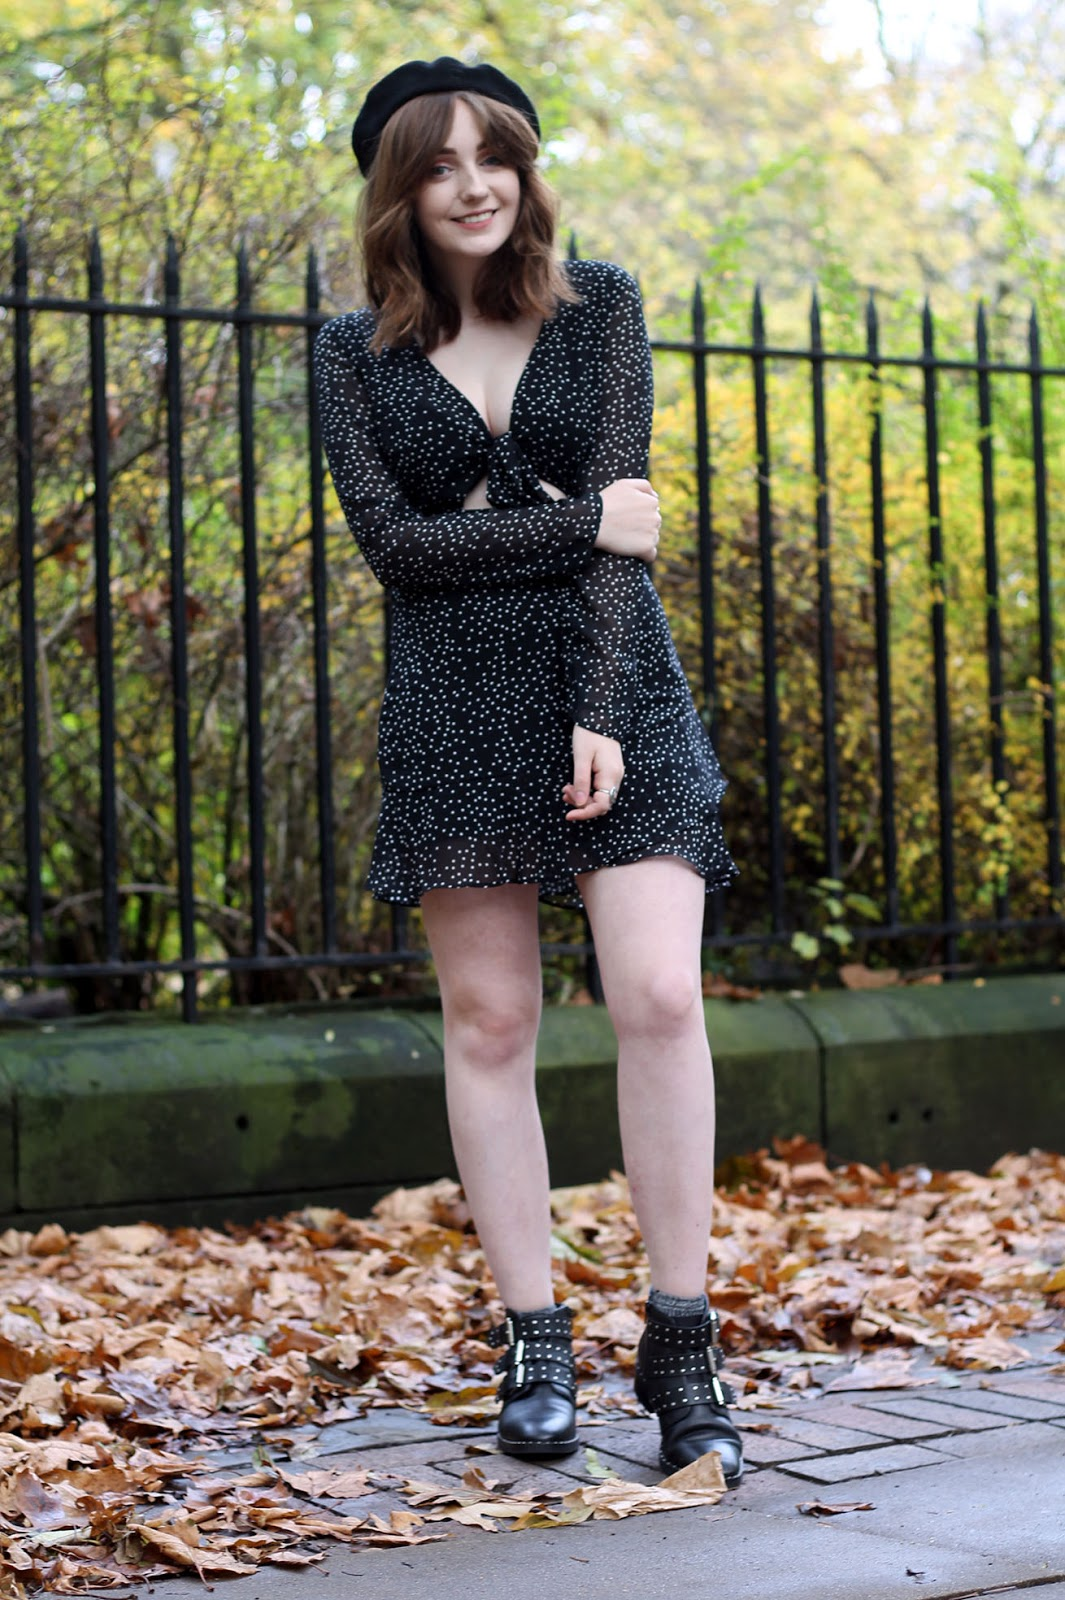 Liverpool fashion blog with Tobi bowie dress